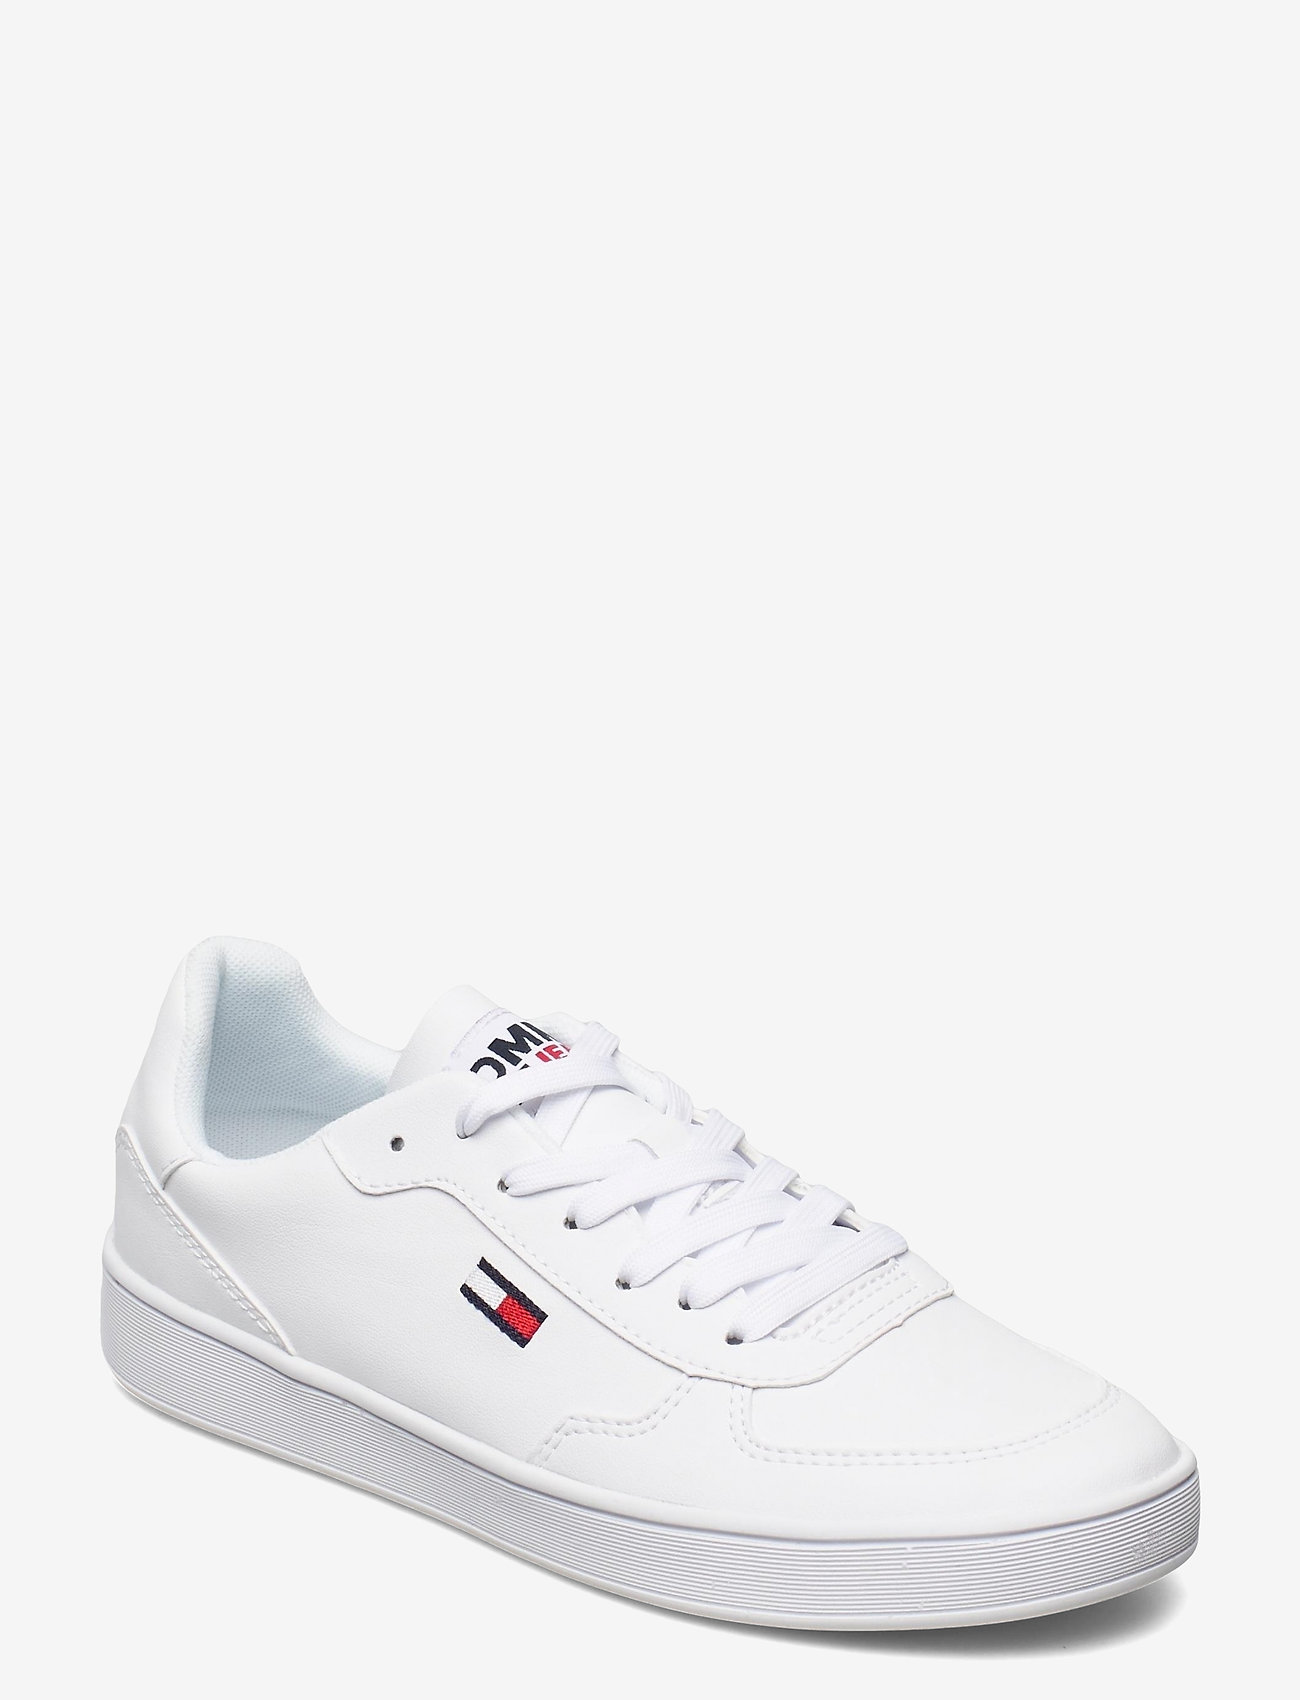 Tommy Hilfiger - TOMMY JEANS CUPSOLE SNEAKER - low top sneakers - white - 0